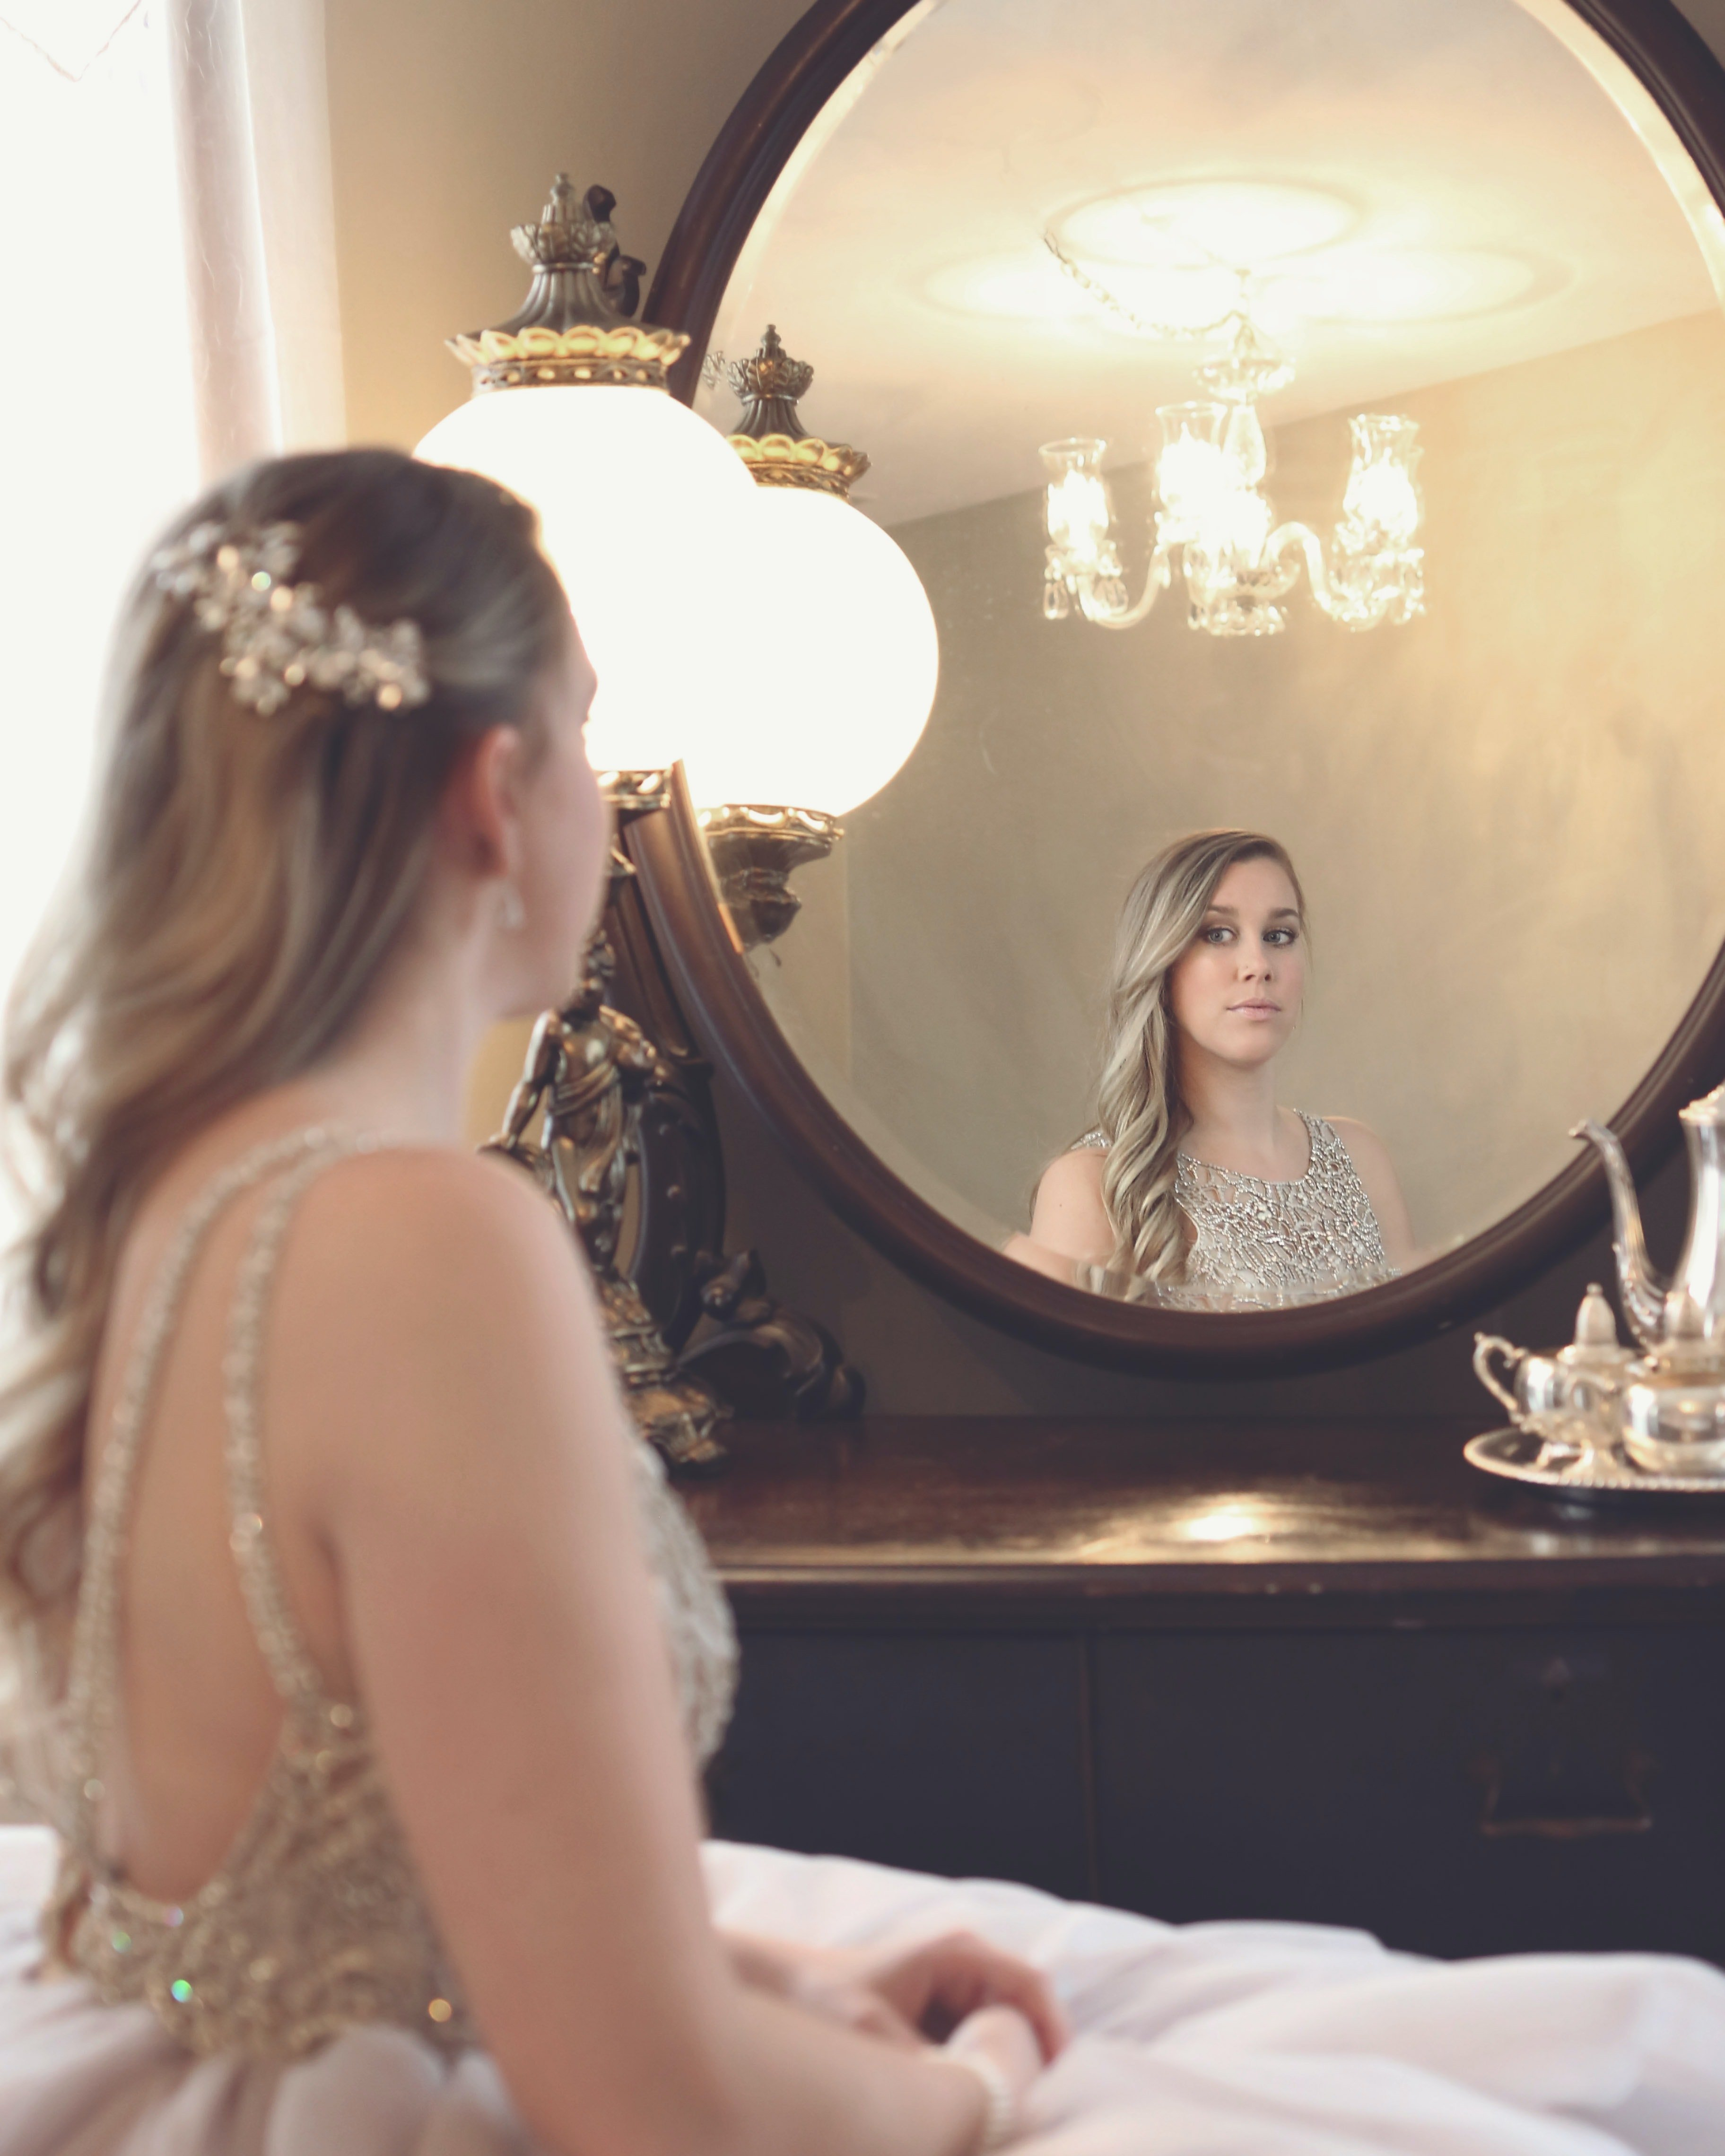 A woman staring at the mirror. | Photo: Pexel